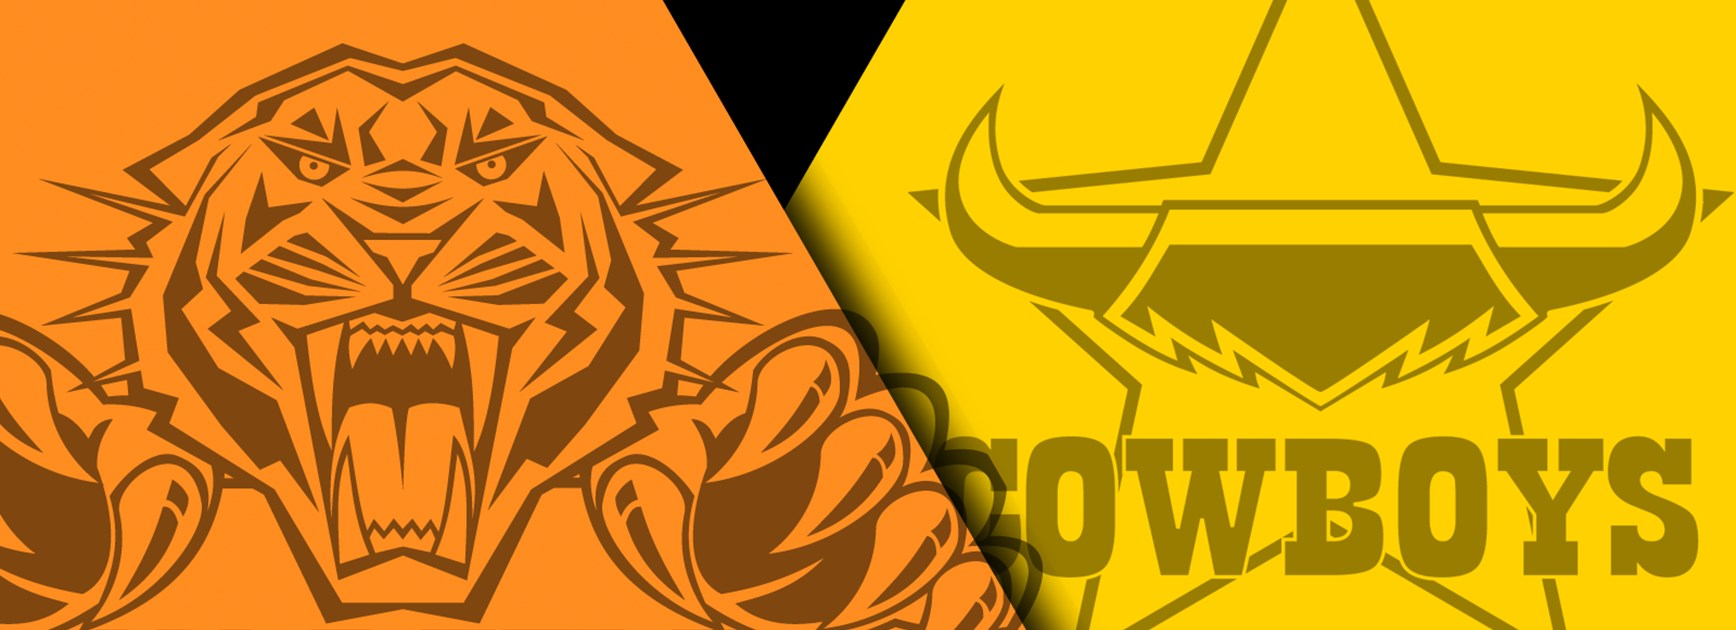 Will the Wests Tigers beat the Cowboys in Round 22?